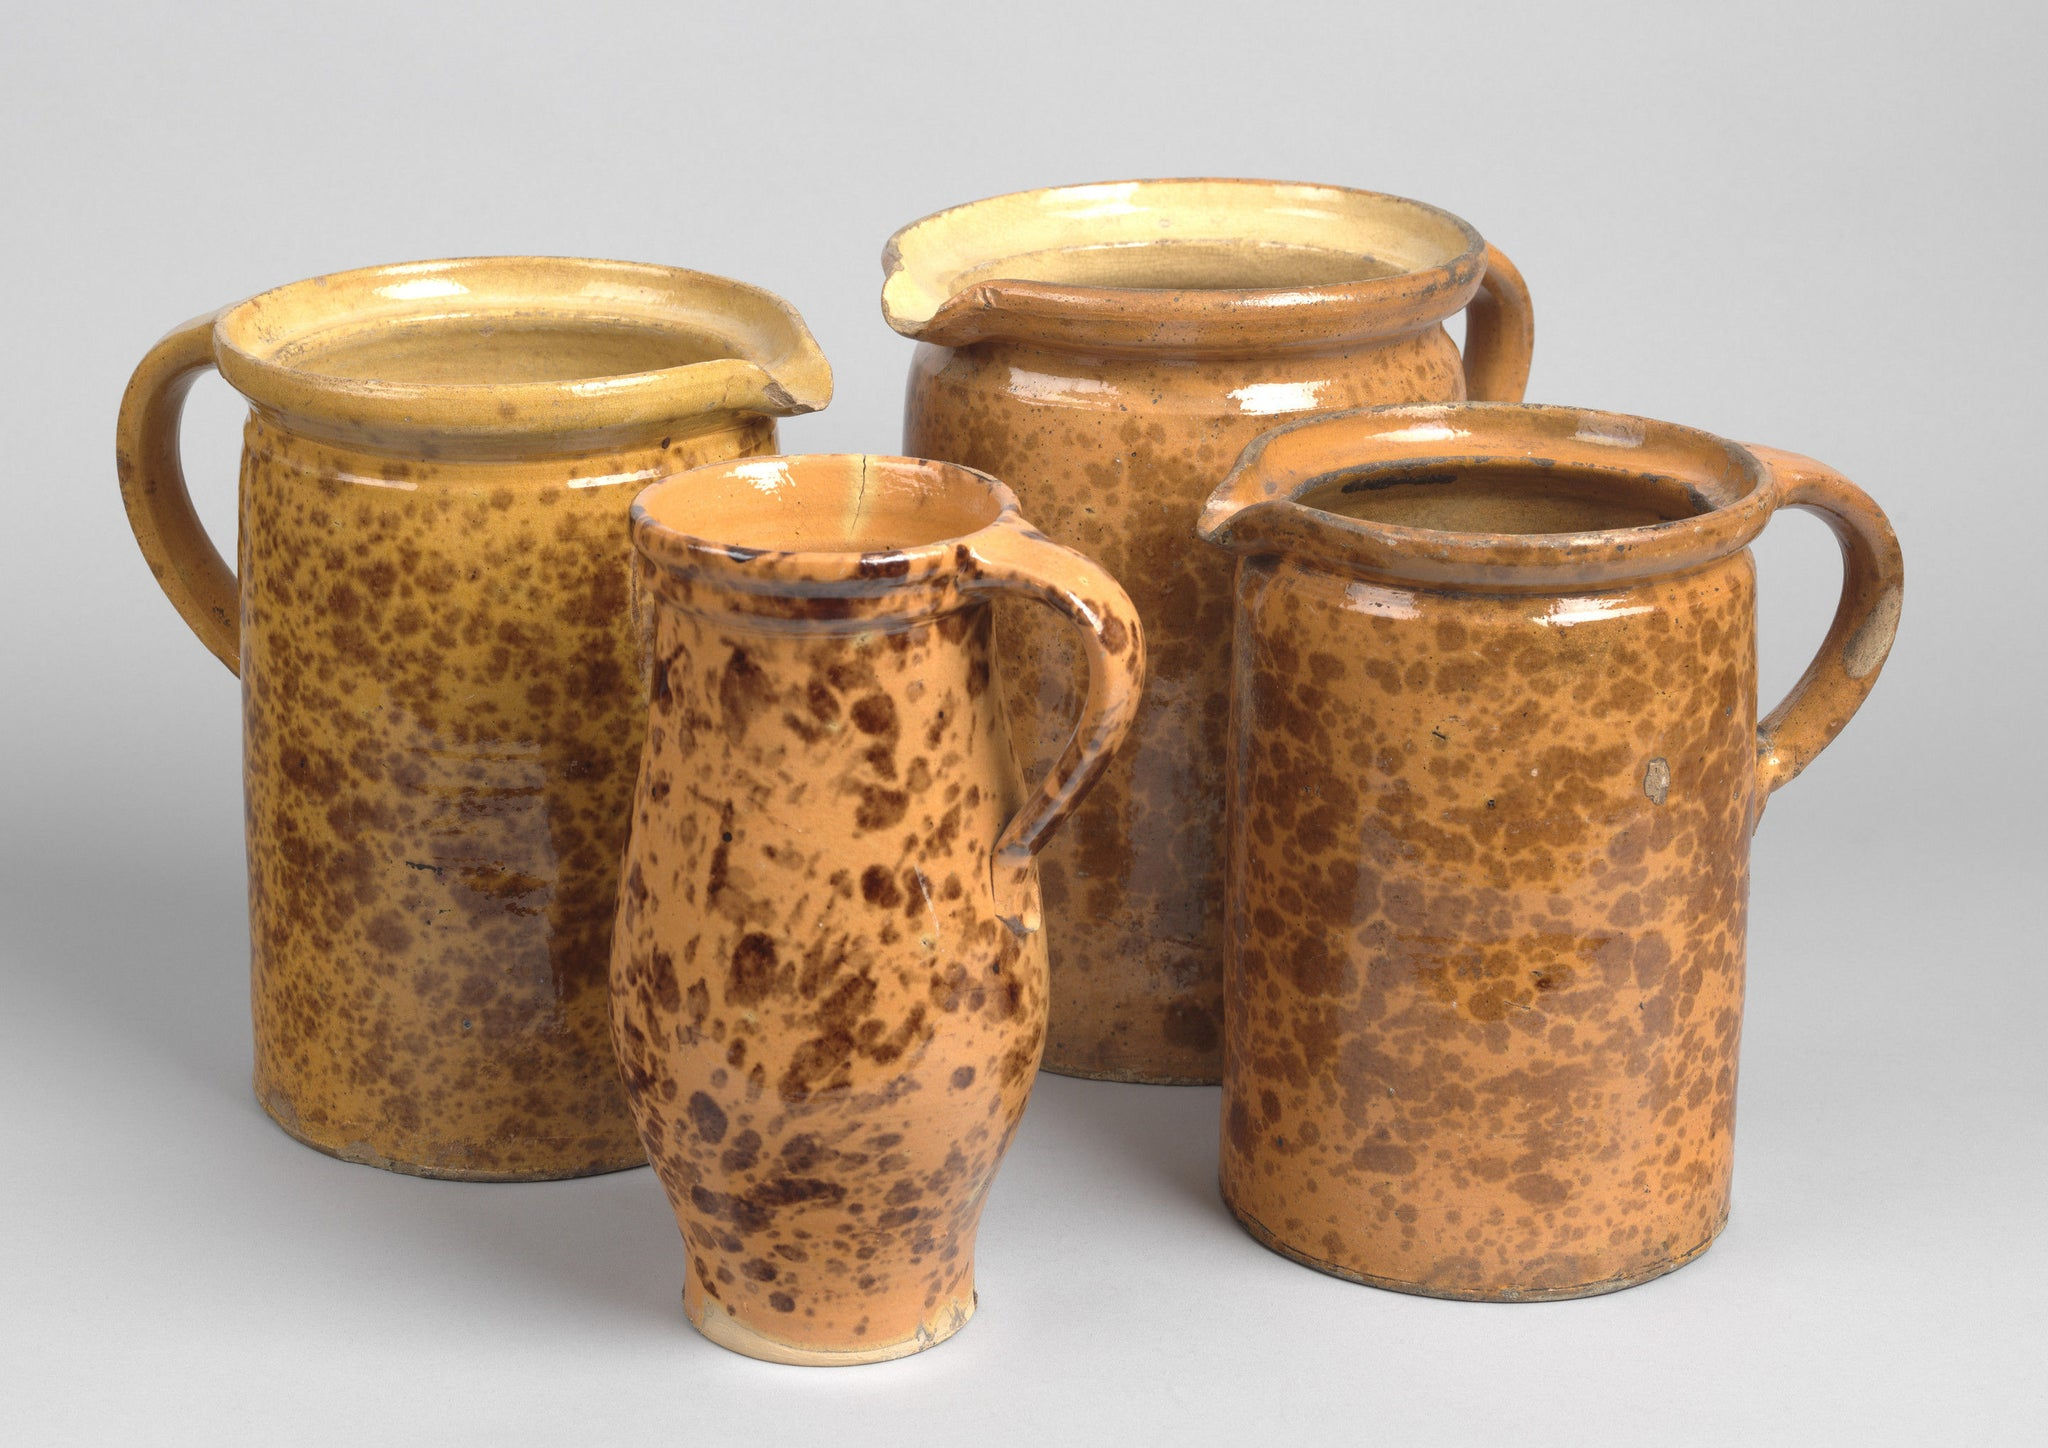 A Collection of Four Splatterglazed Jugs